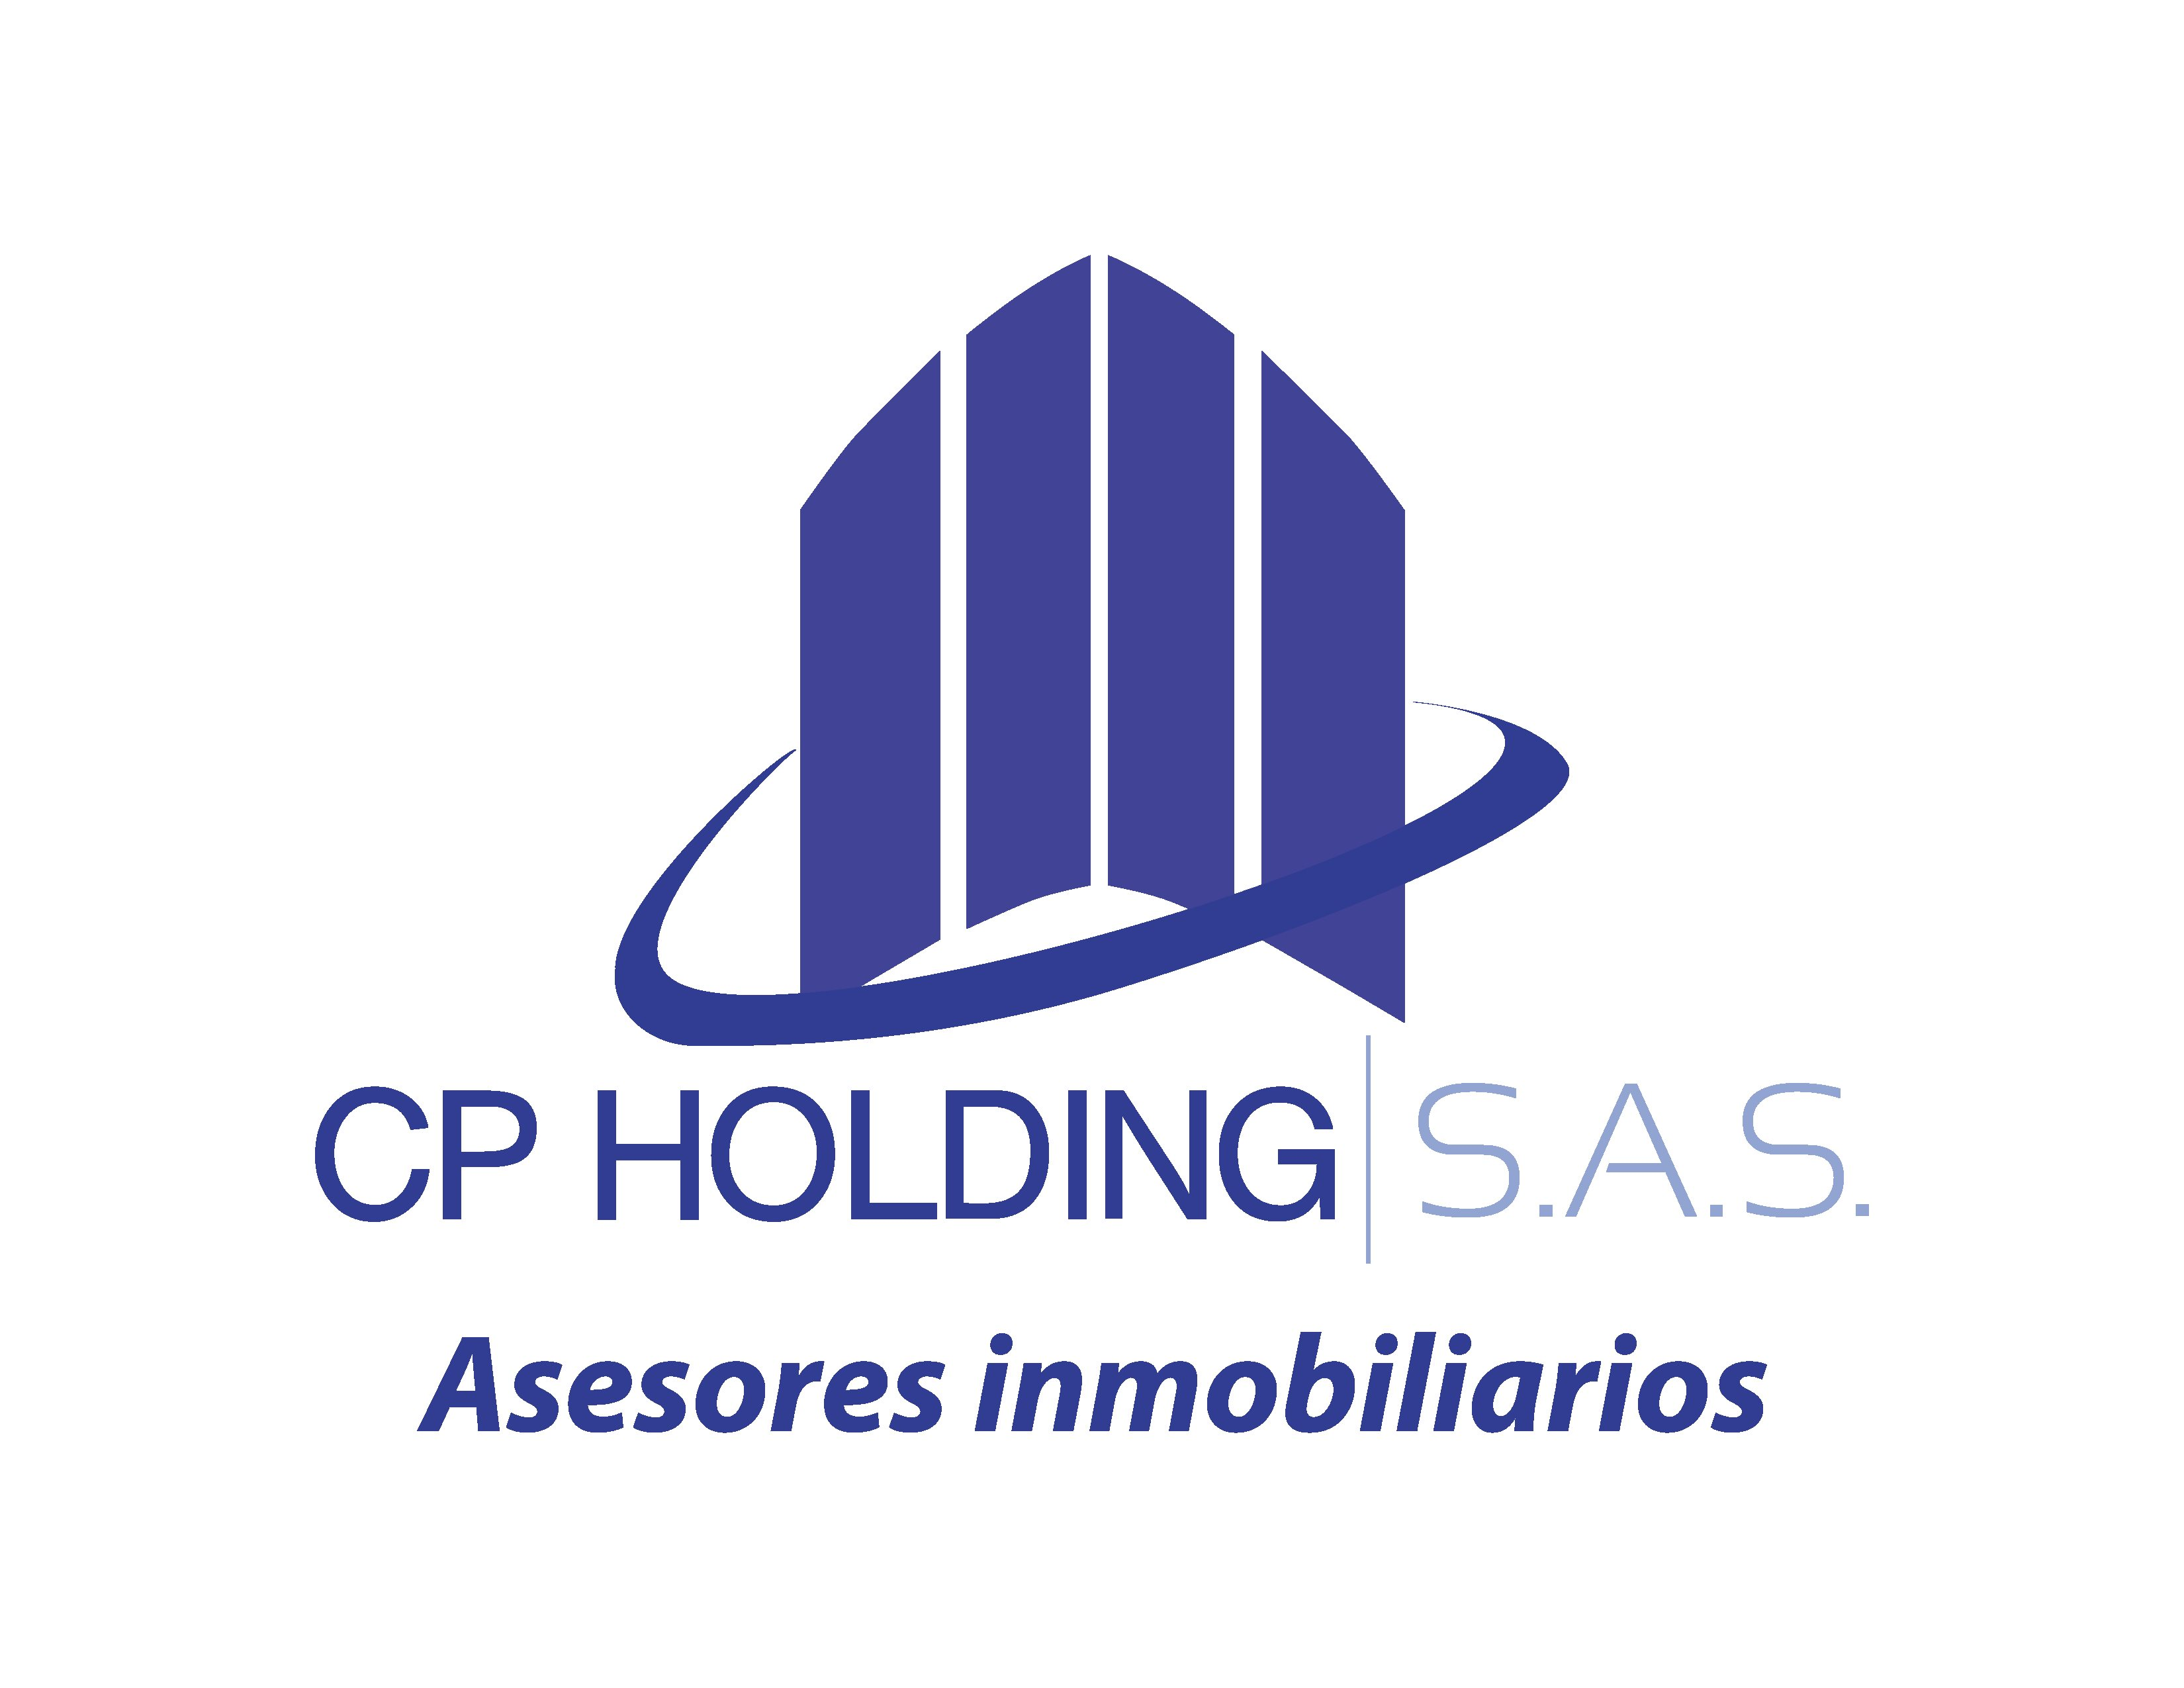 CP Holding S.A.S.